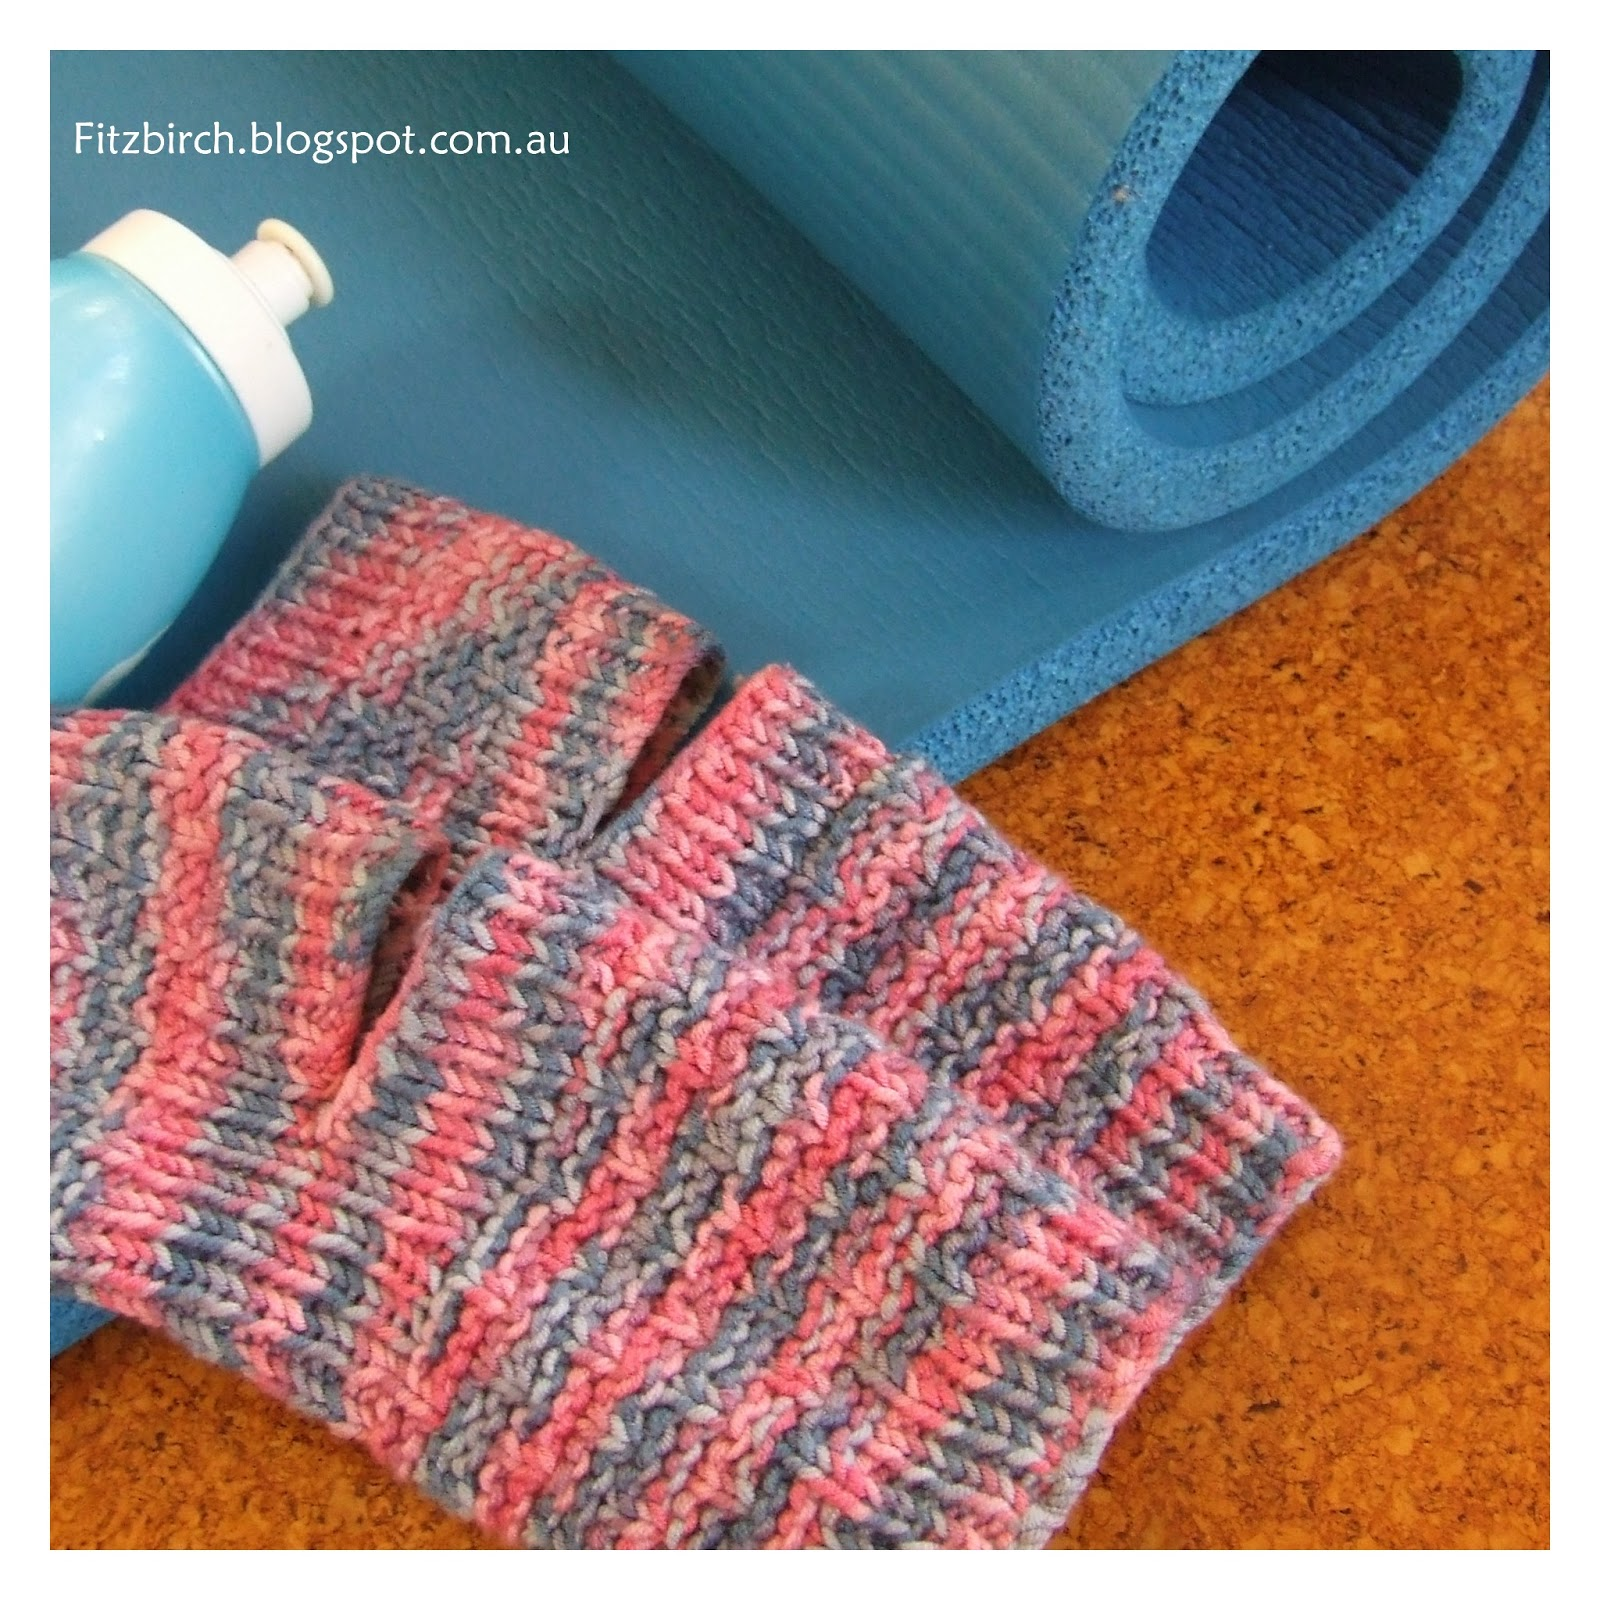 Yoga Leg Warmers Knitting Pattern : FitzBirch Crafts: Yoga Socks for a Ballerina